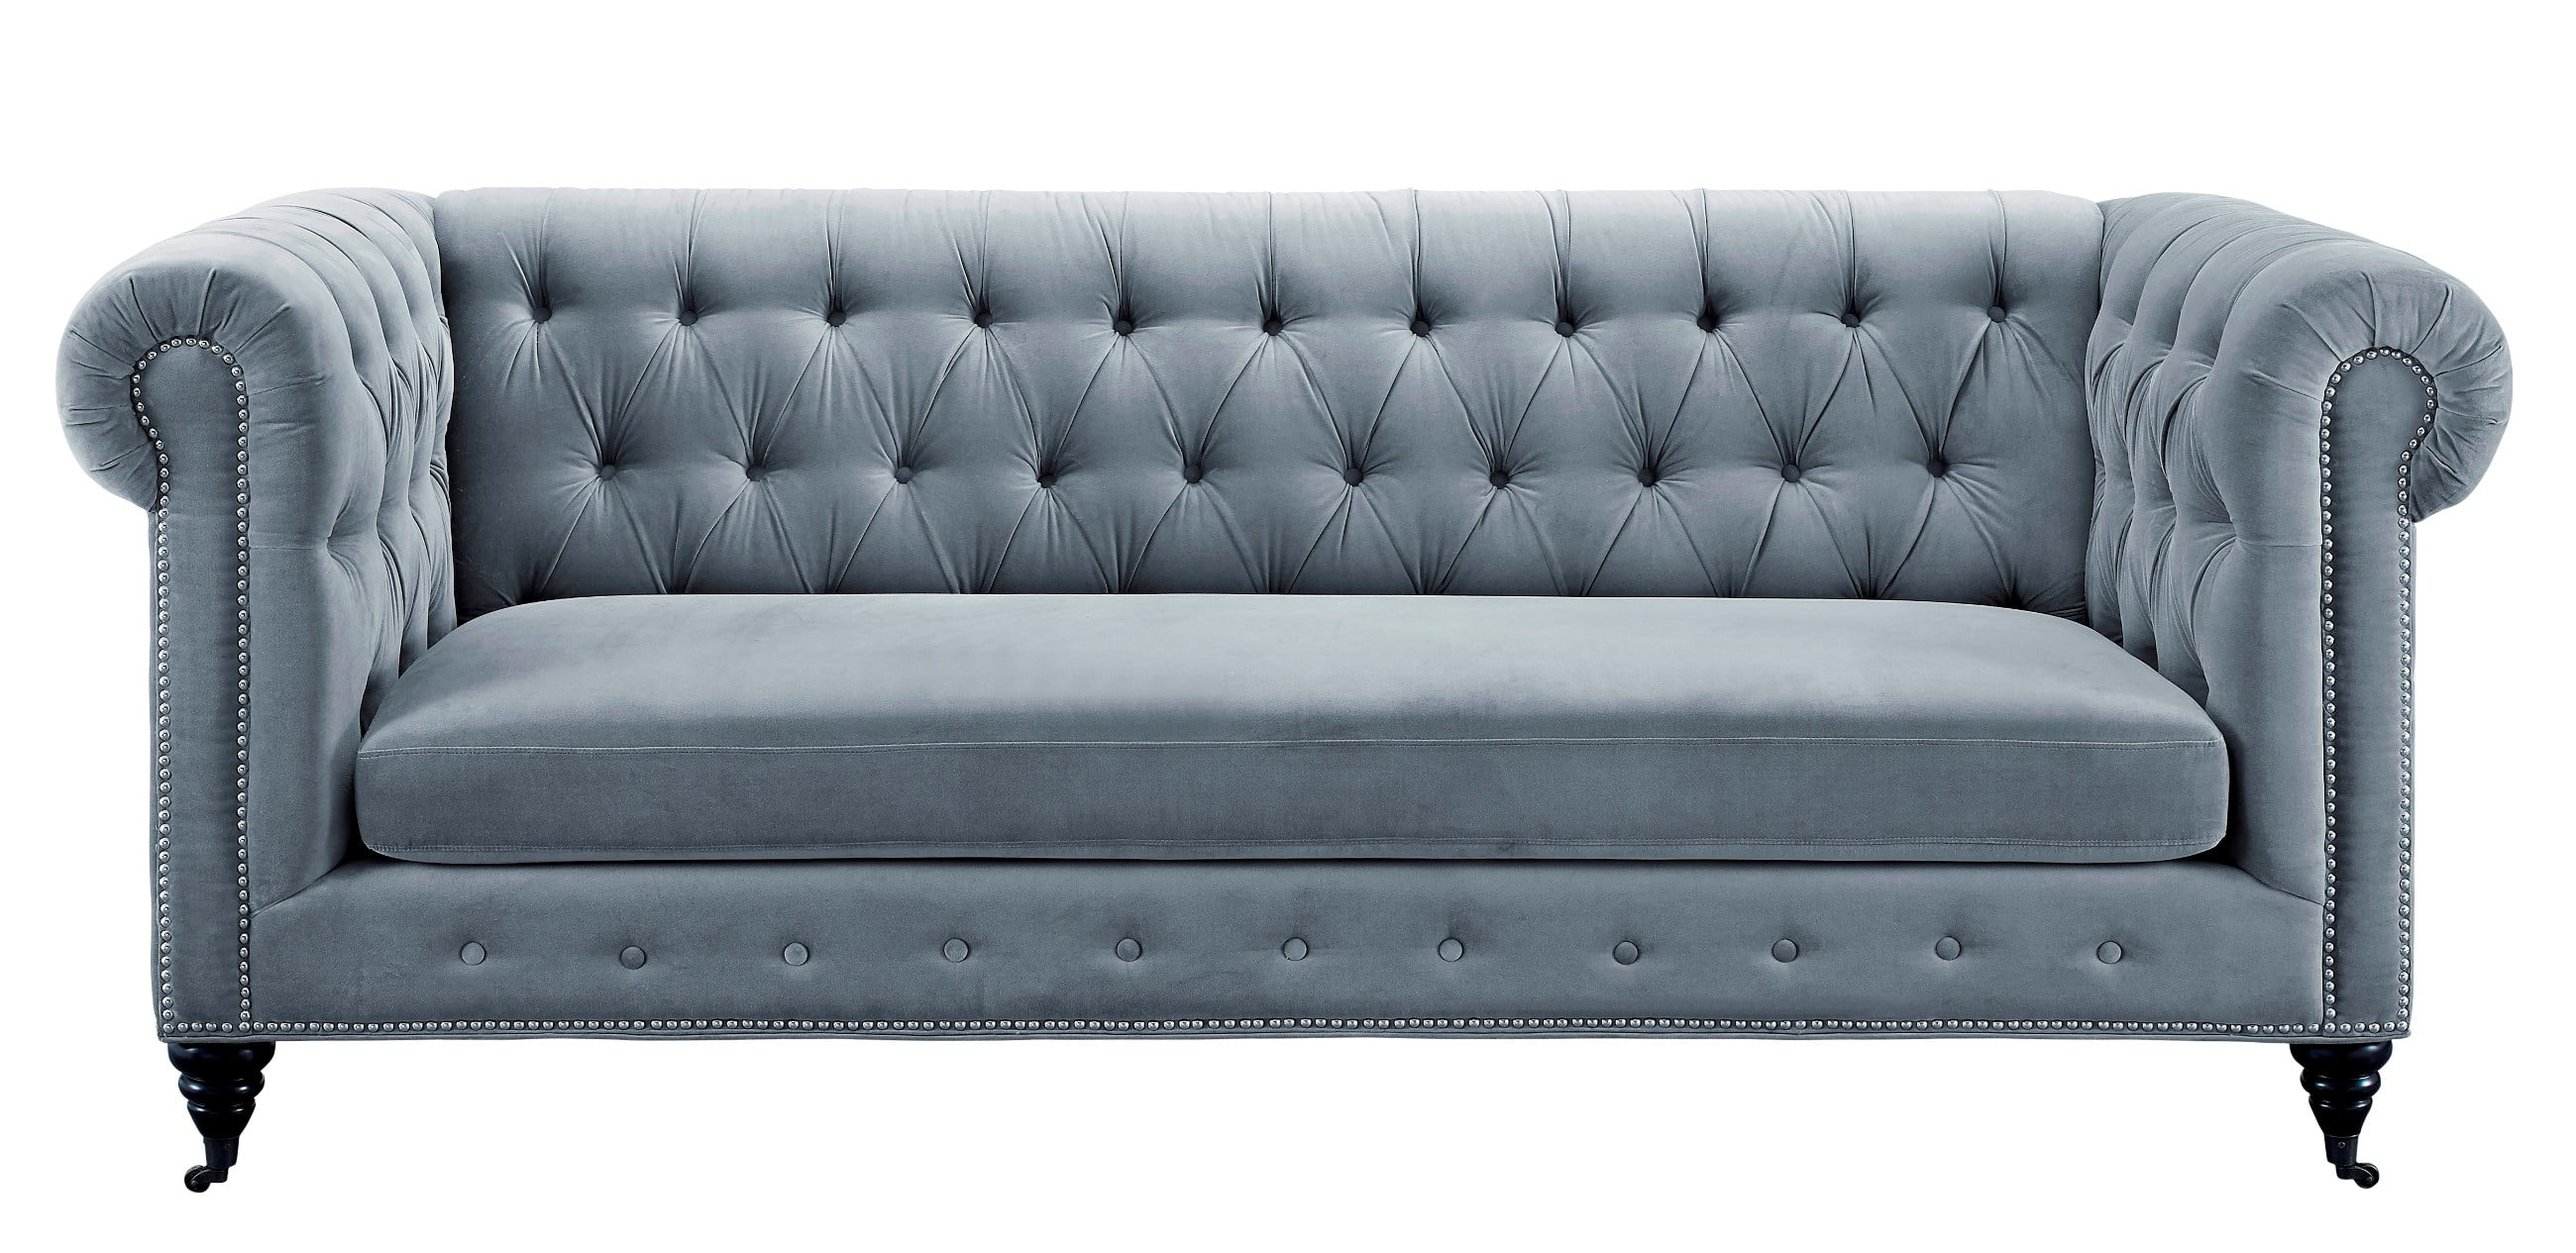 Hanny Grey Velvet Sofa from TOV S48